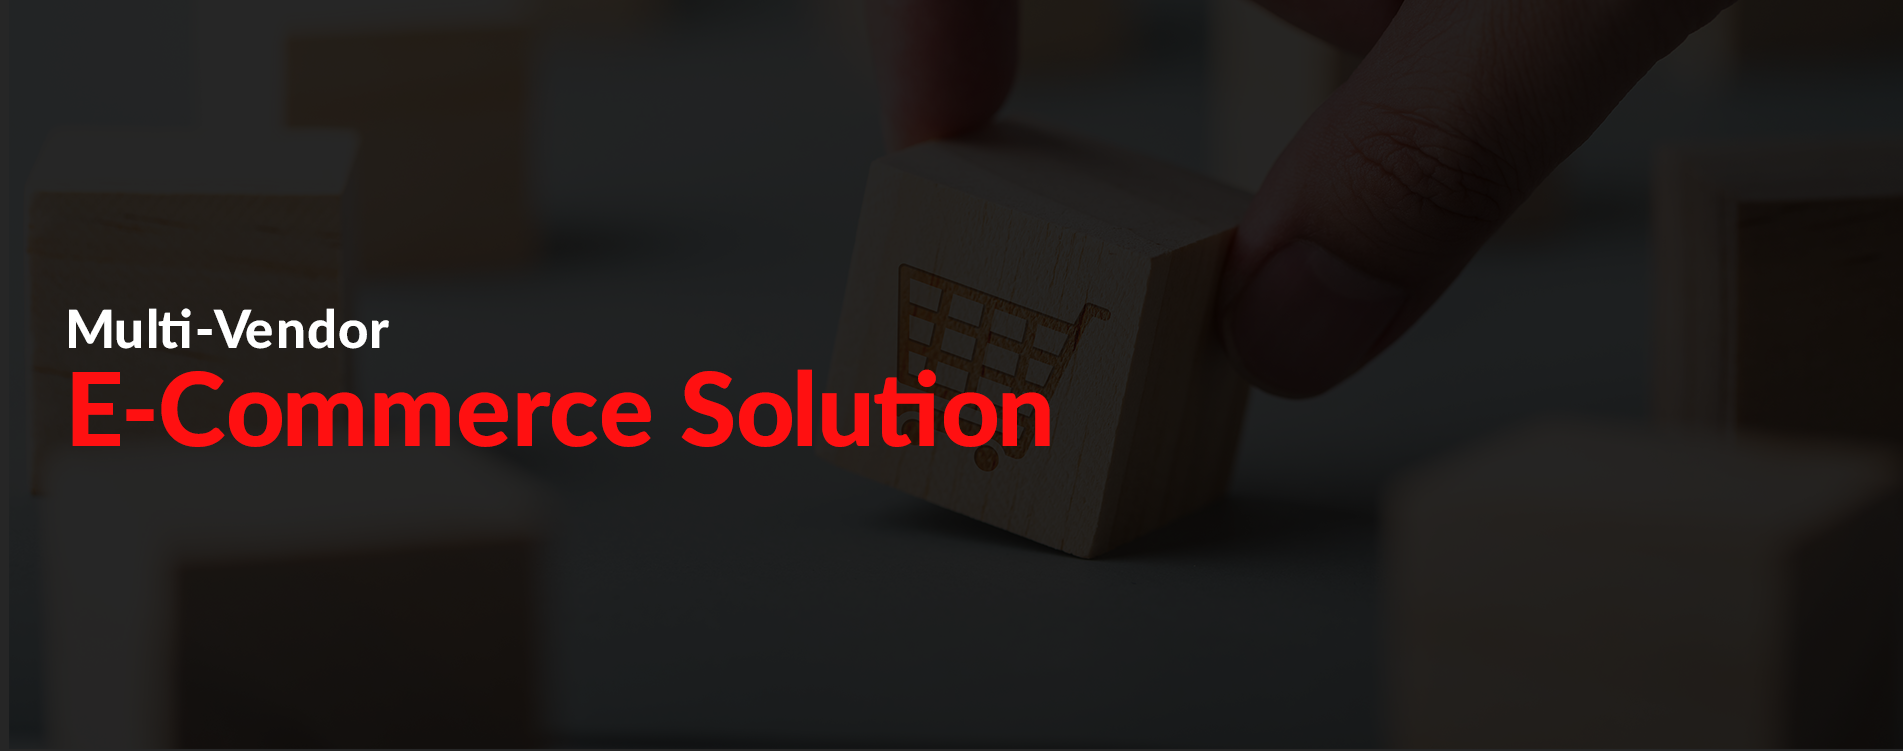 multi vendor marketplace solutions for business